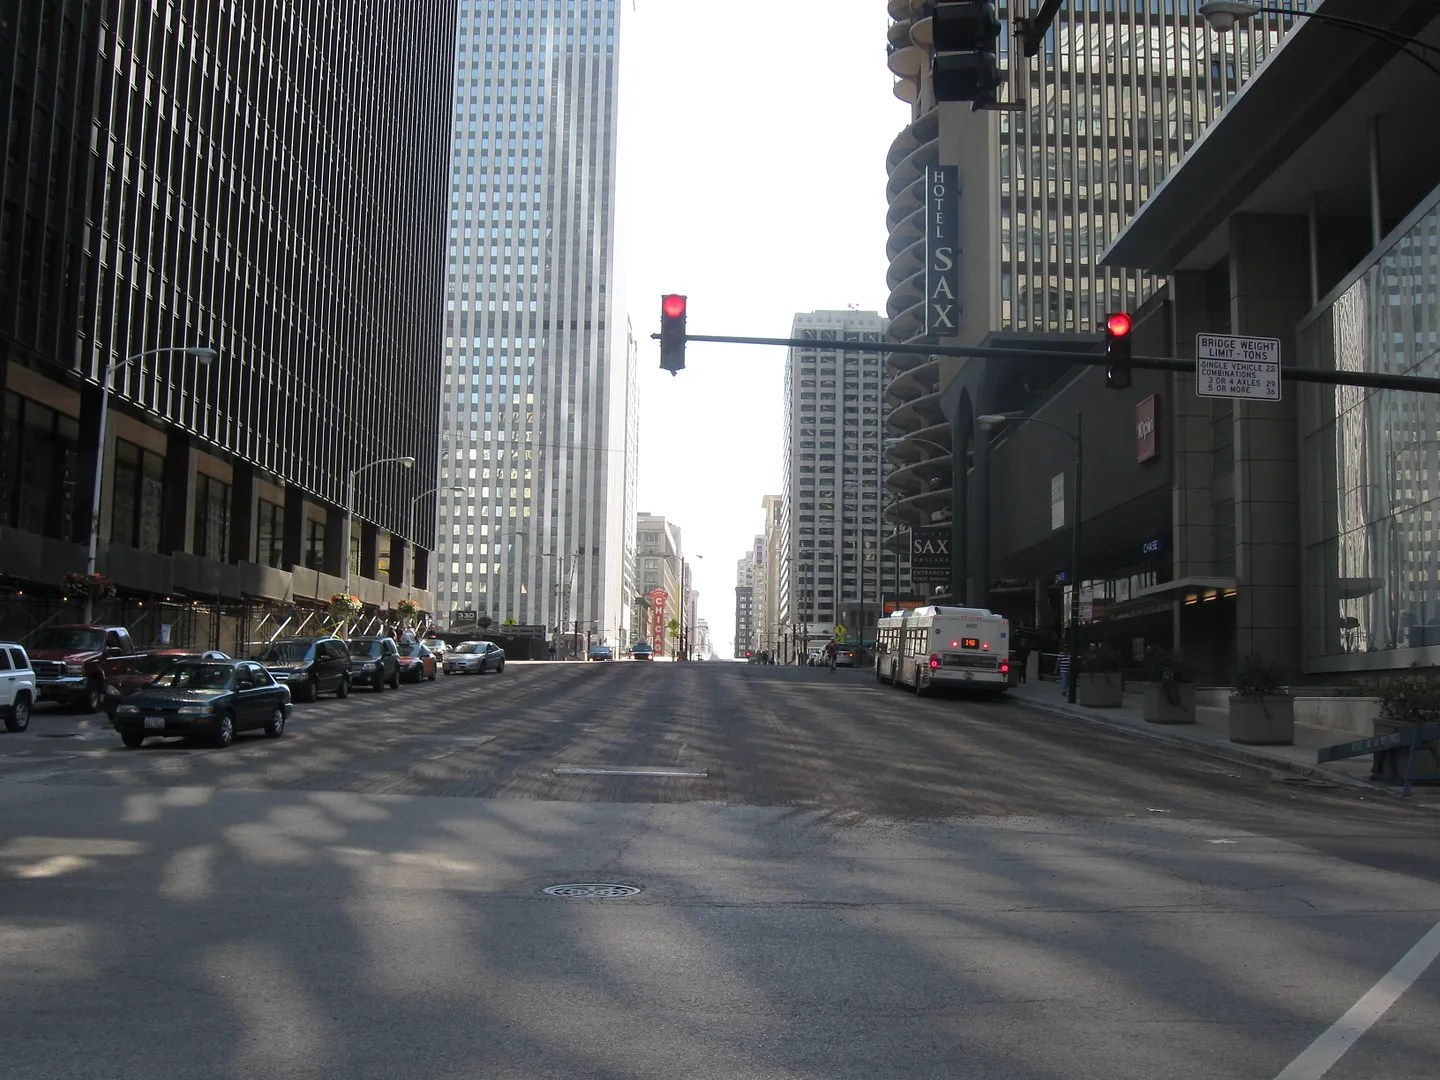 State Street, Chicago